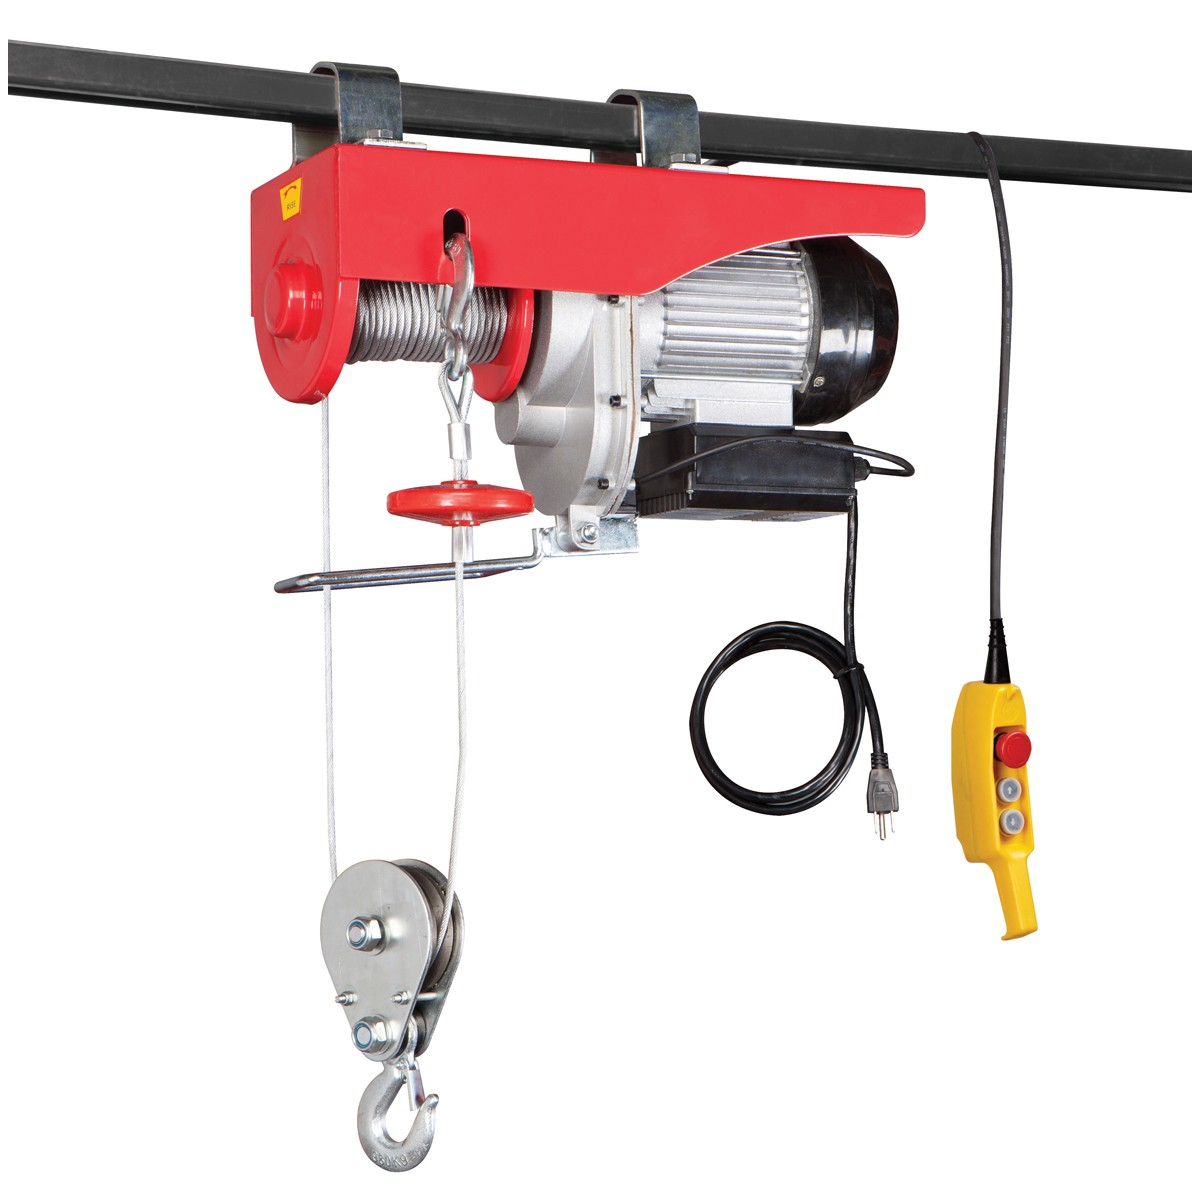 Small 500kg Wire-rope Electric Hoist For Sale - Buy Electric Hoist,Wire-rope Electric Hoist,500kg Electric Wire Rope Hoist Product on Alibaba.com